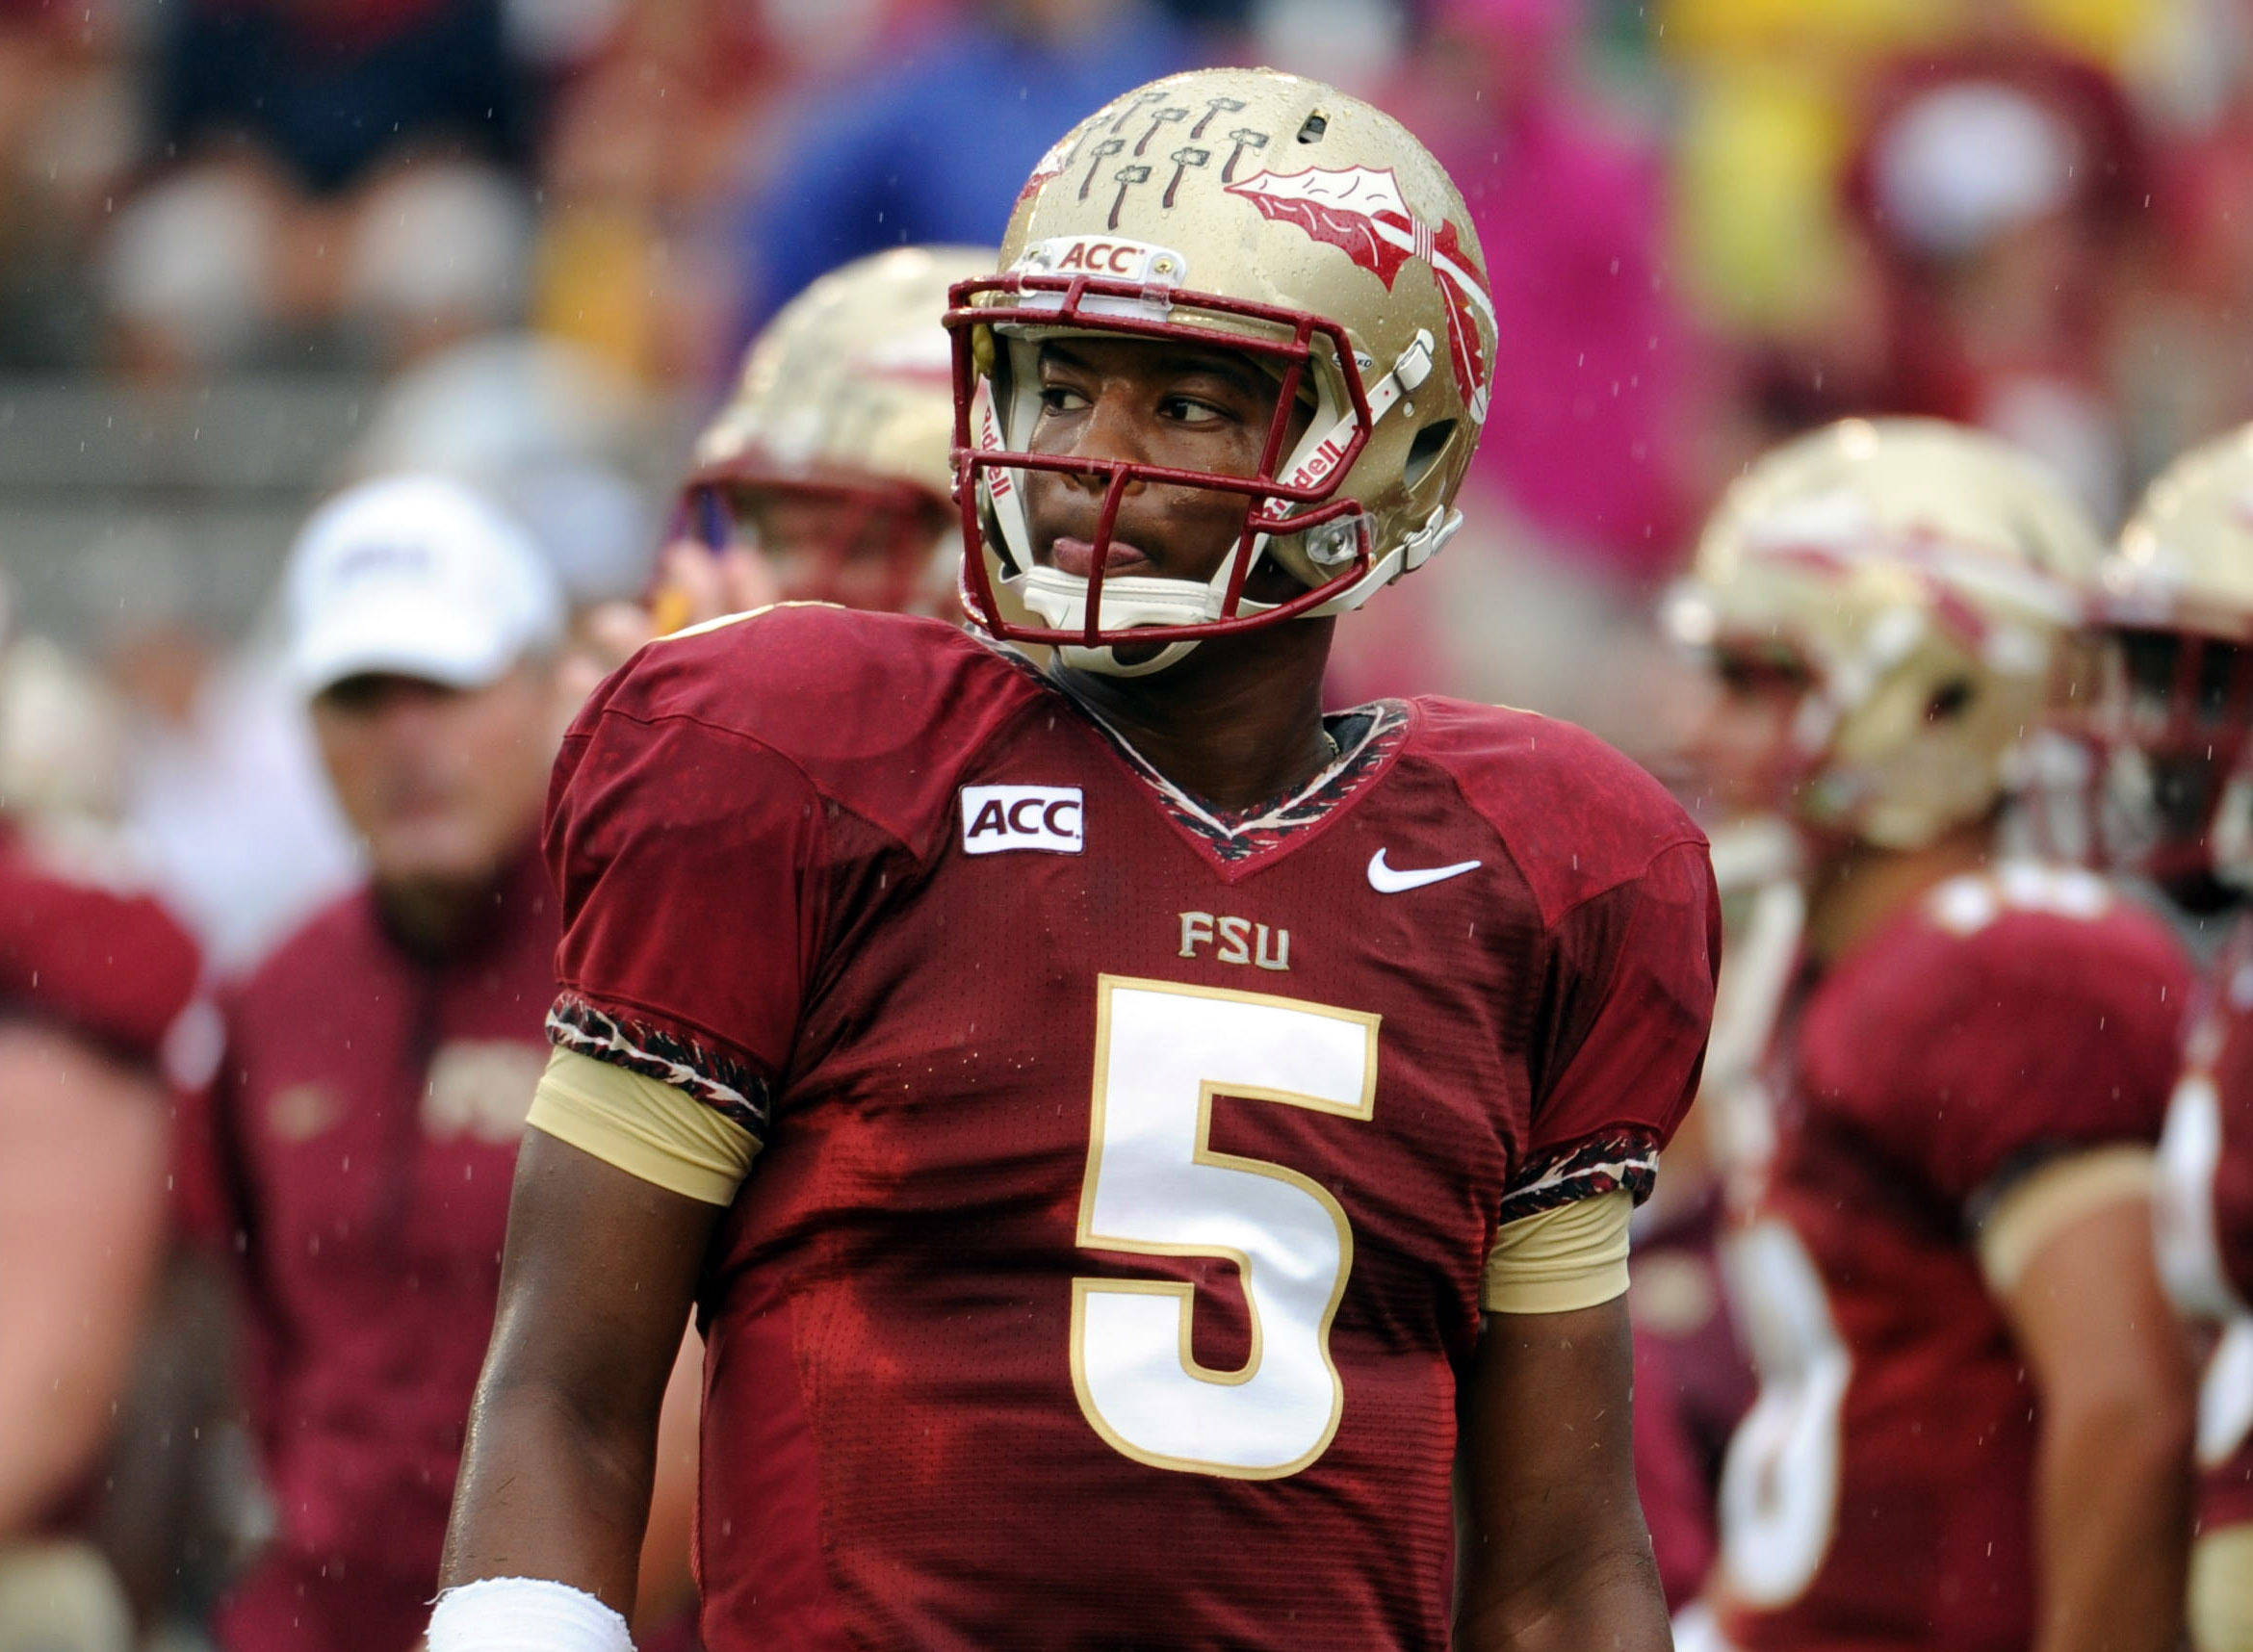 Florida State Seminoles quarterback Jameis Winston (5) before the start of the game against the Bethune-Cookman Wildcats. (Melina Vastola-USA TODAY Sports)